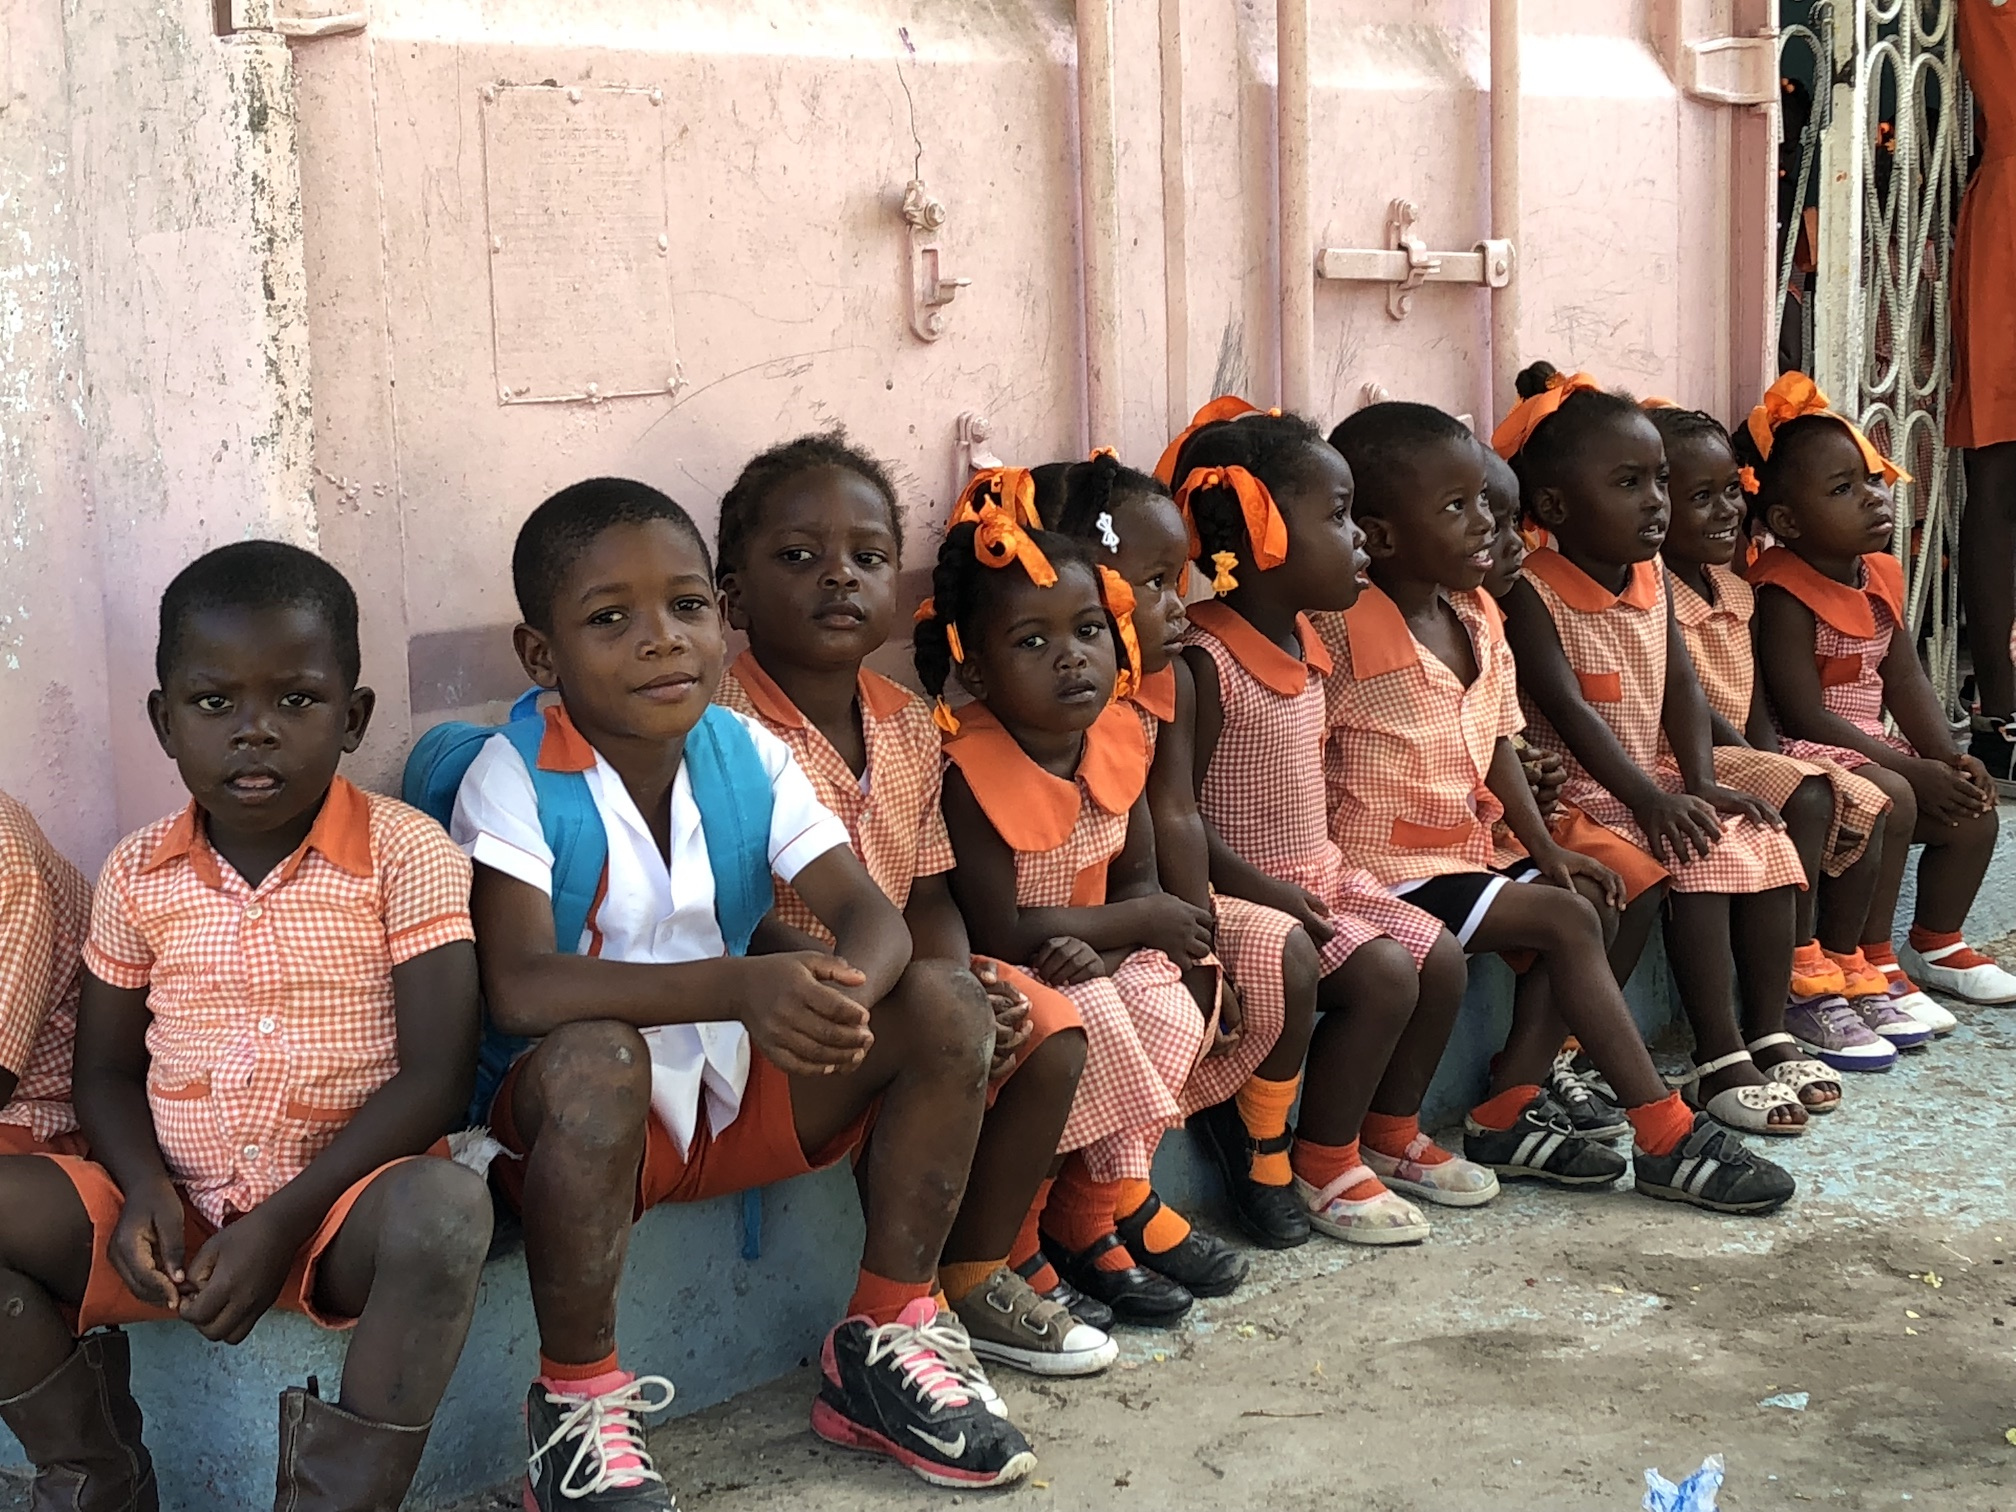 12 Guatemalan children sit against an orange wall outside of their school